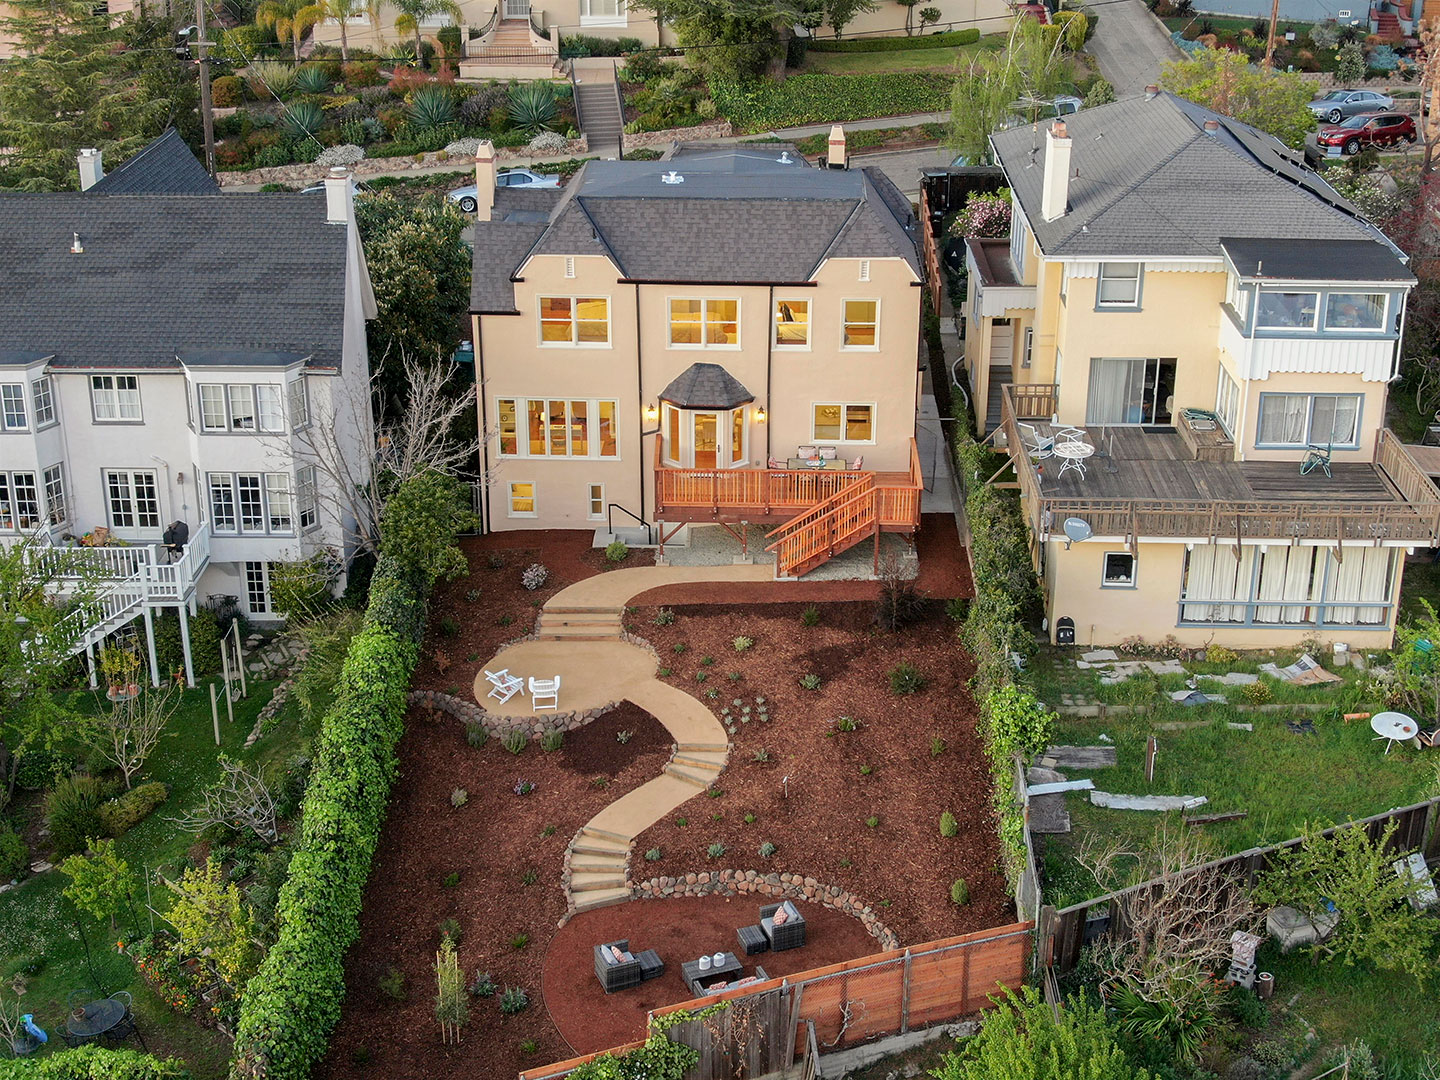 bird's eye view of the backyard and home